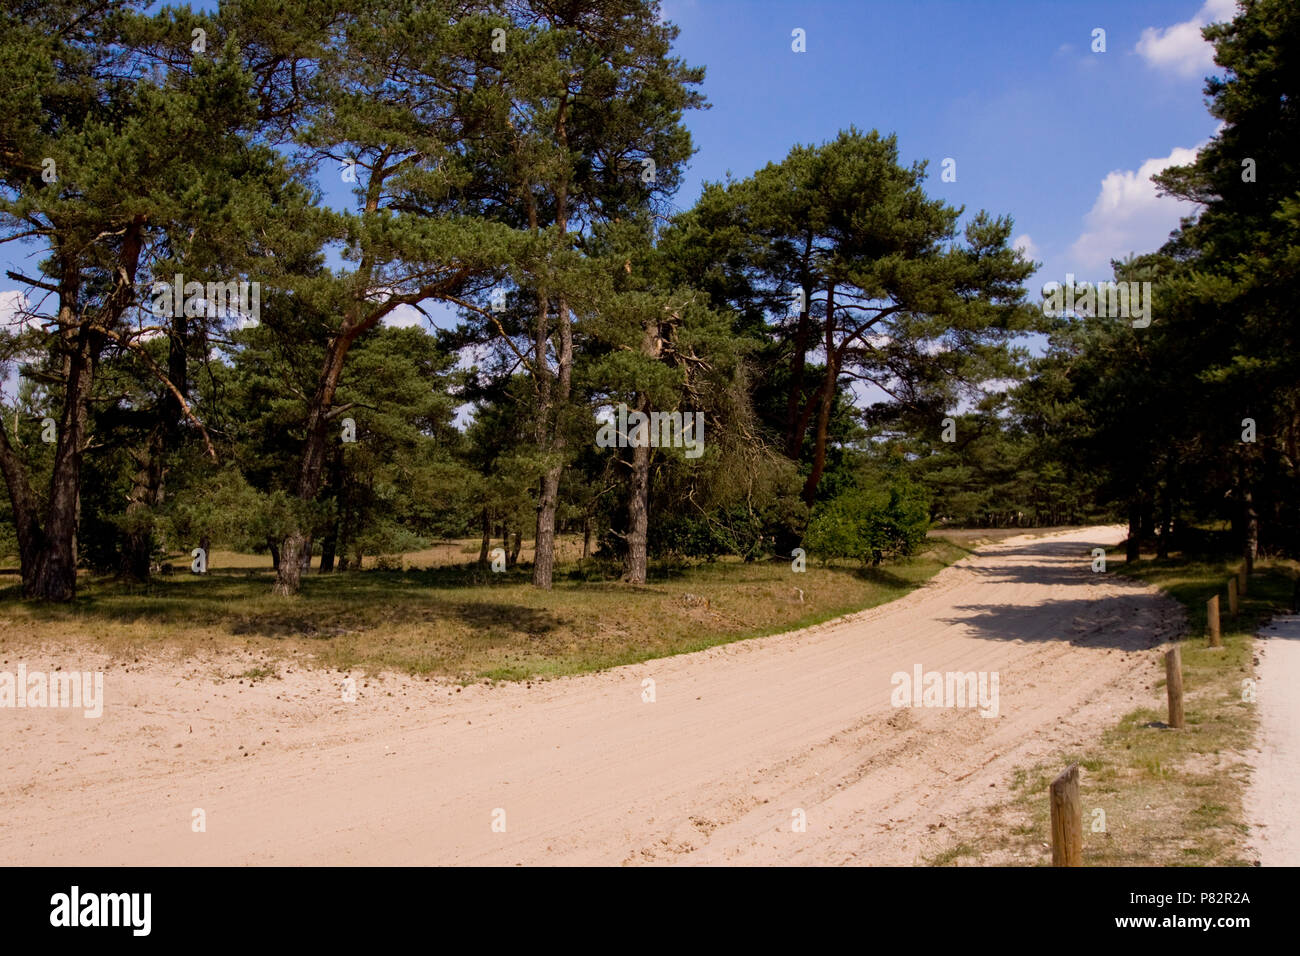 Bospad in het bos bij Havelte; Forest road in forest at Havelte - Stock Image